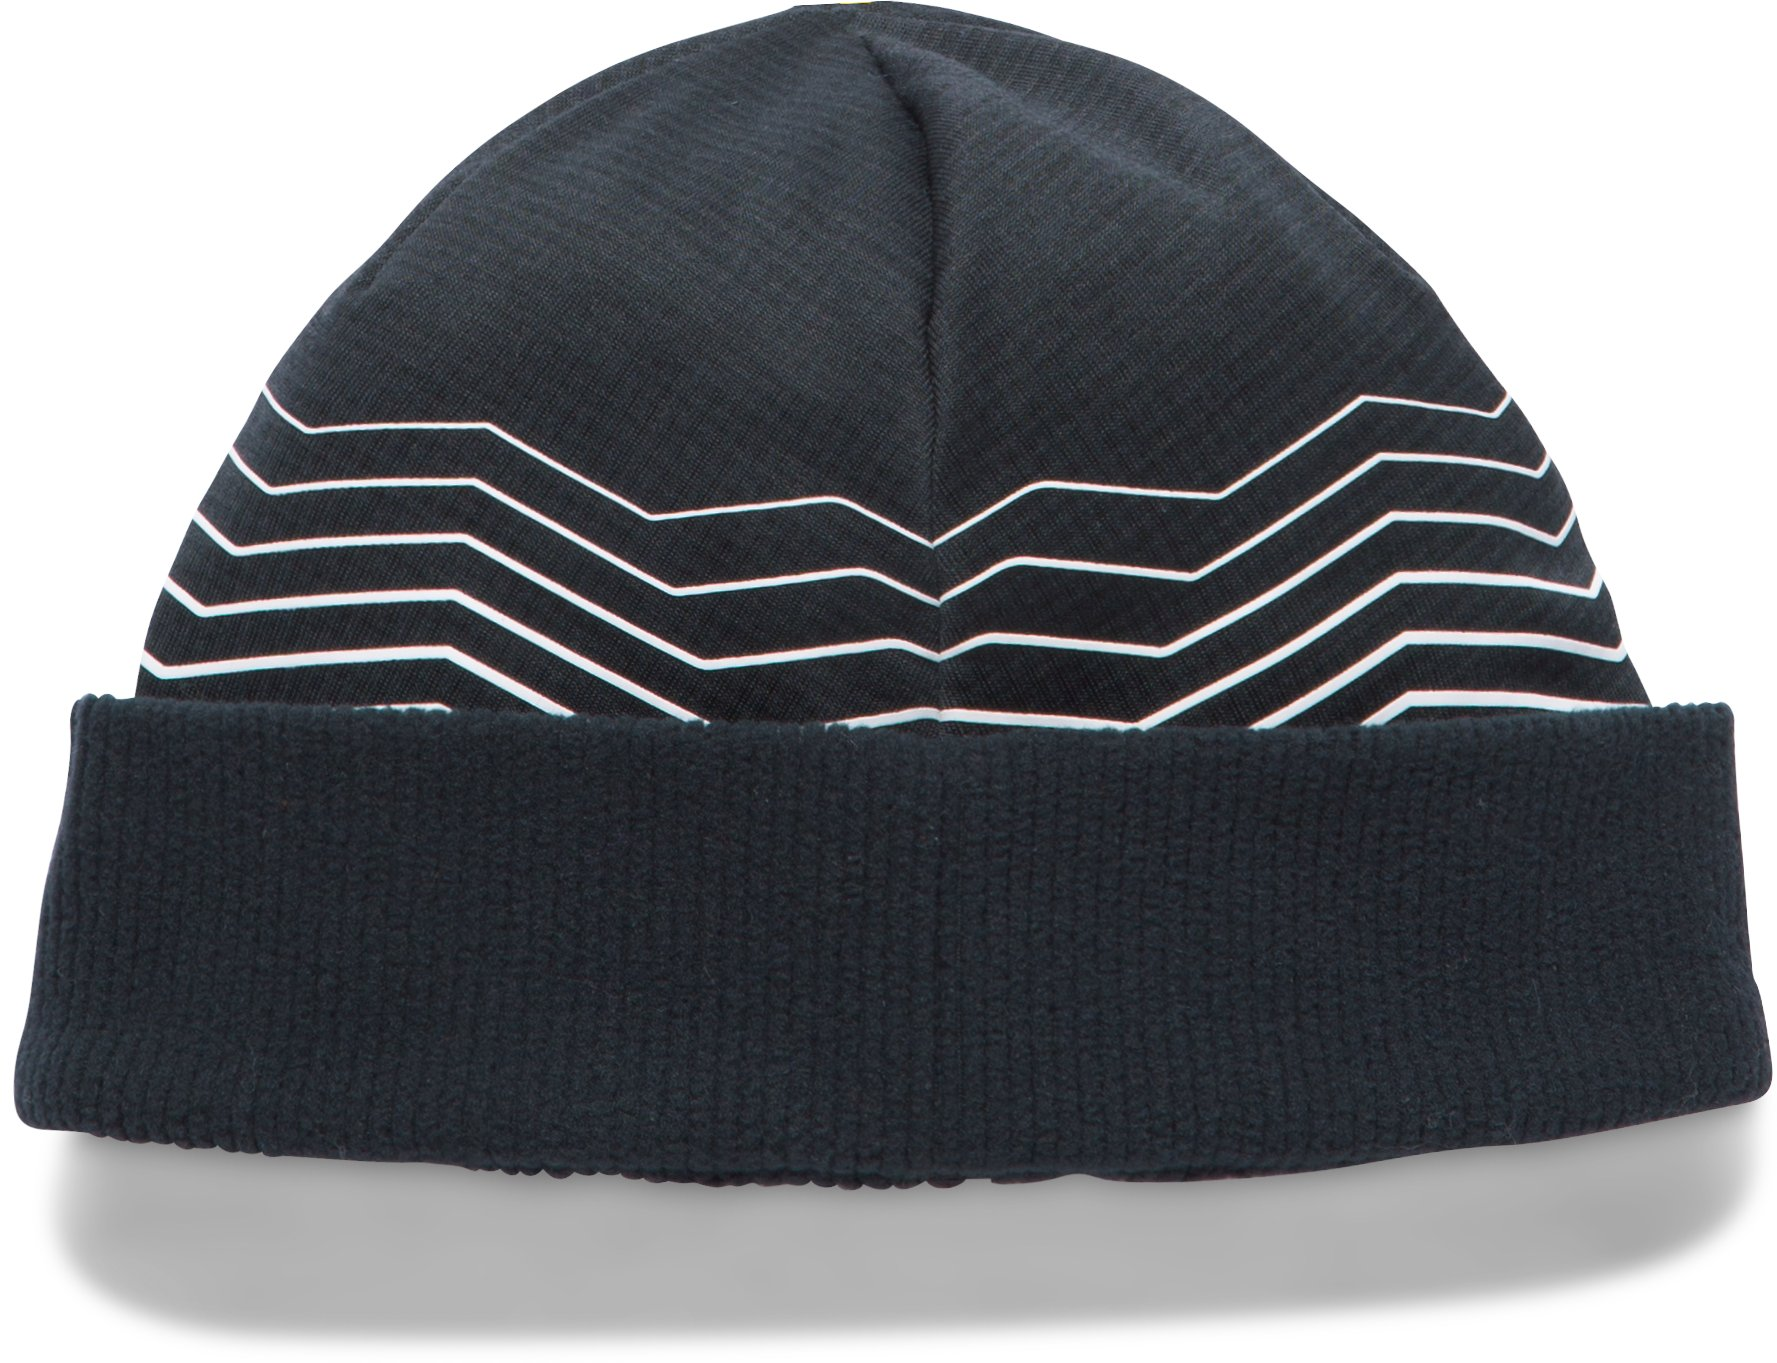 Girls' ColdGear® Reactor Fleece Beanie, Black , undefined